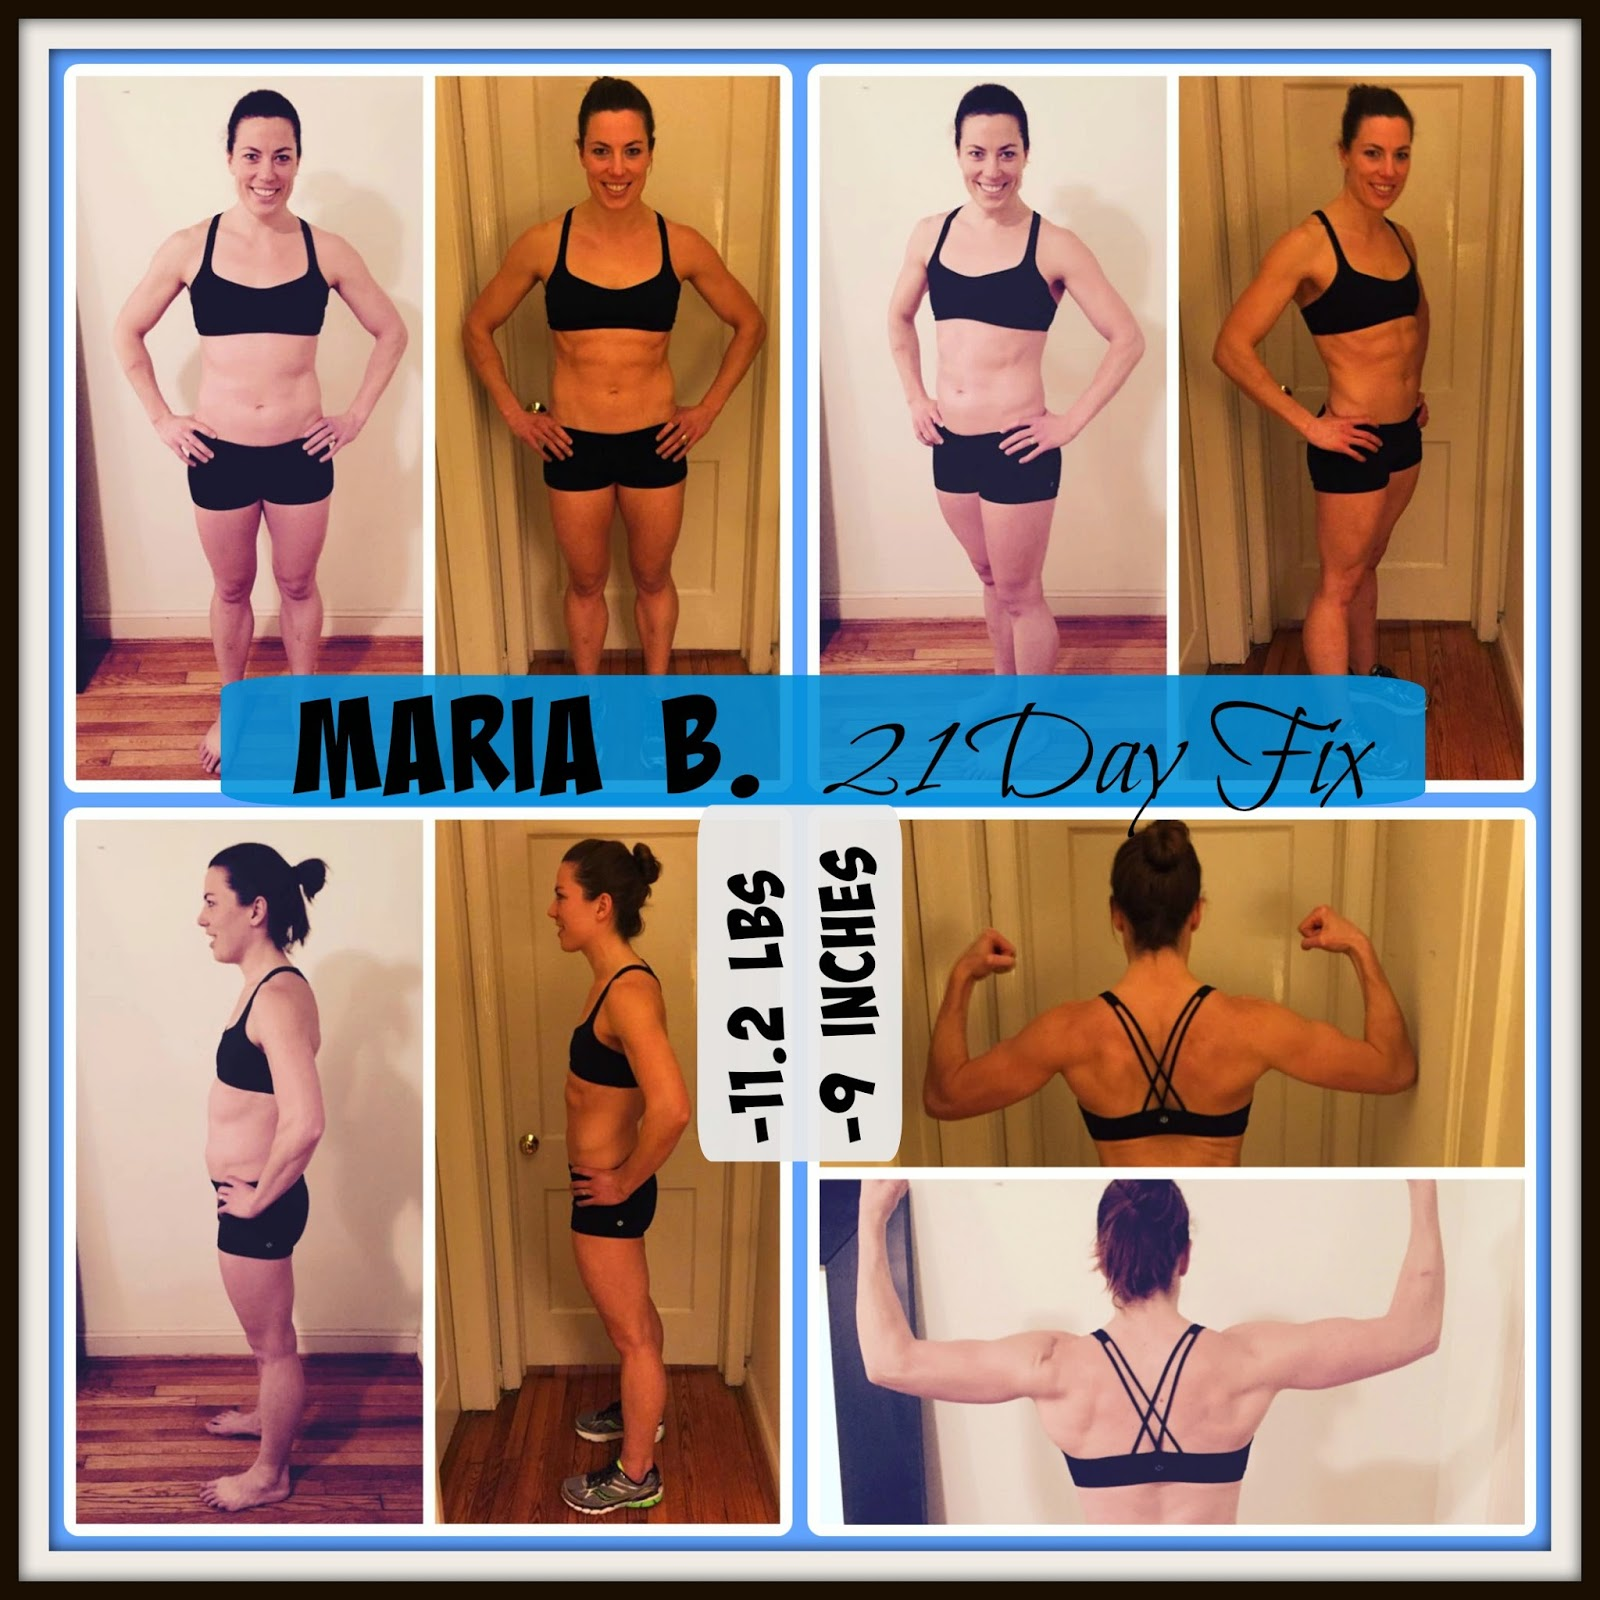 Deidra Penrose, 21 day fix results, 21 day fix transformation, successful personal trainer, top beachbody coach harrisburg pa, home fitness coach, stay at home mom, healthy mom, healthy nurse, women's bodybuilding results, NPC figure competitor, NPC figure prep, weight loss journey, fitness journey transformations, fitness accountability, shakeology, shakeology results, vegan shakeology, healthy lifestyle tips, meal planning, clean eating tips,  team beachbody transformations, team beachbody results, home fitness program